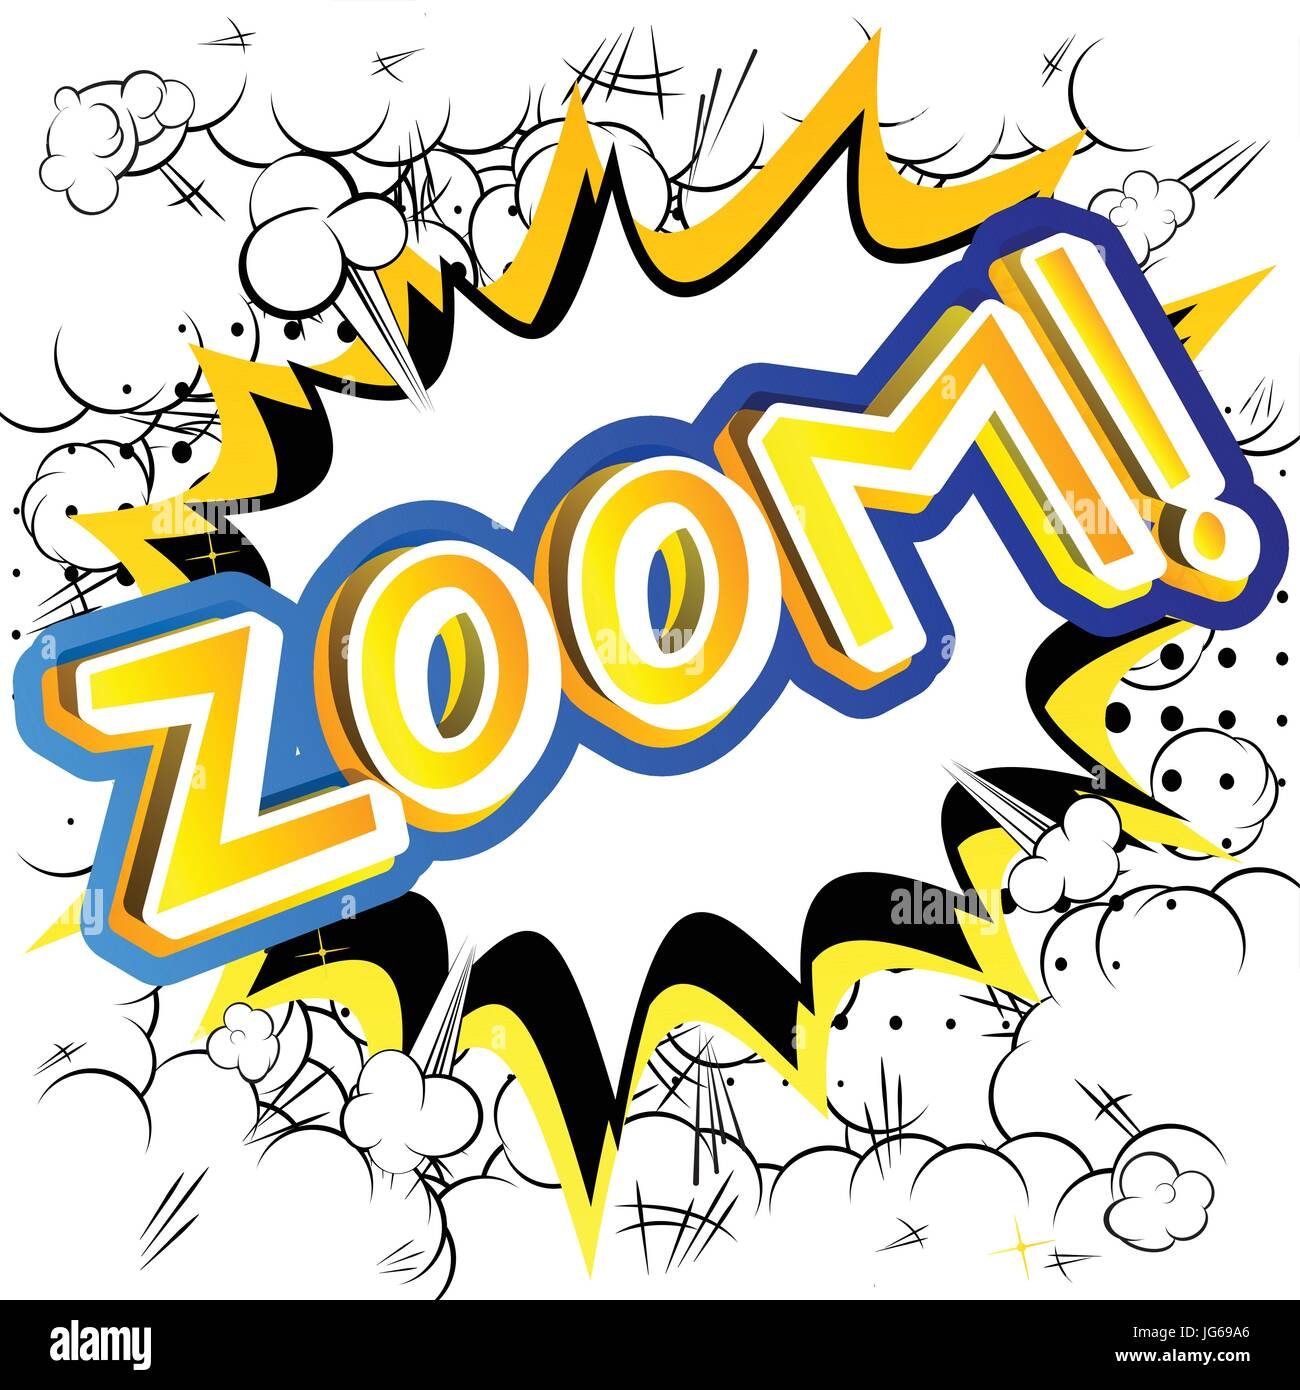 Zoom! - Vector illustrated comic book style expression. - Stock Image